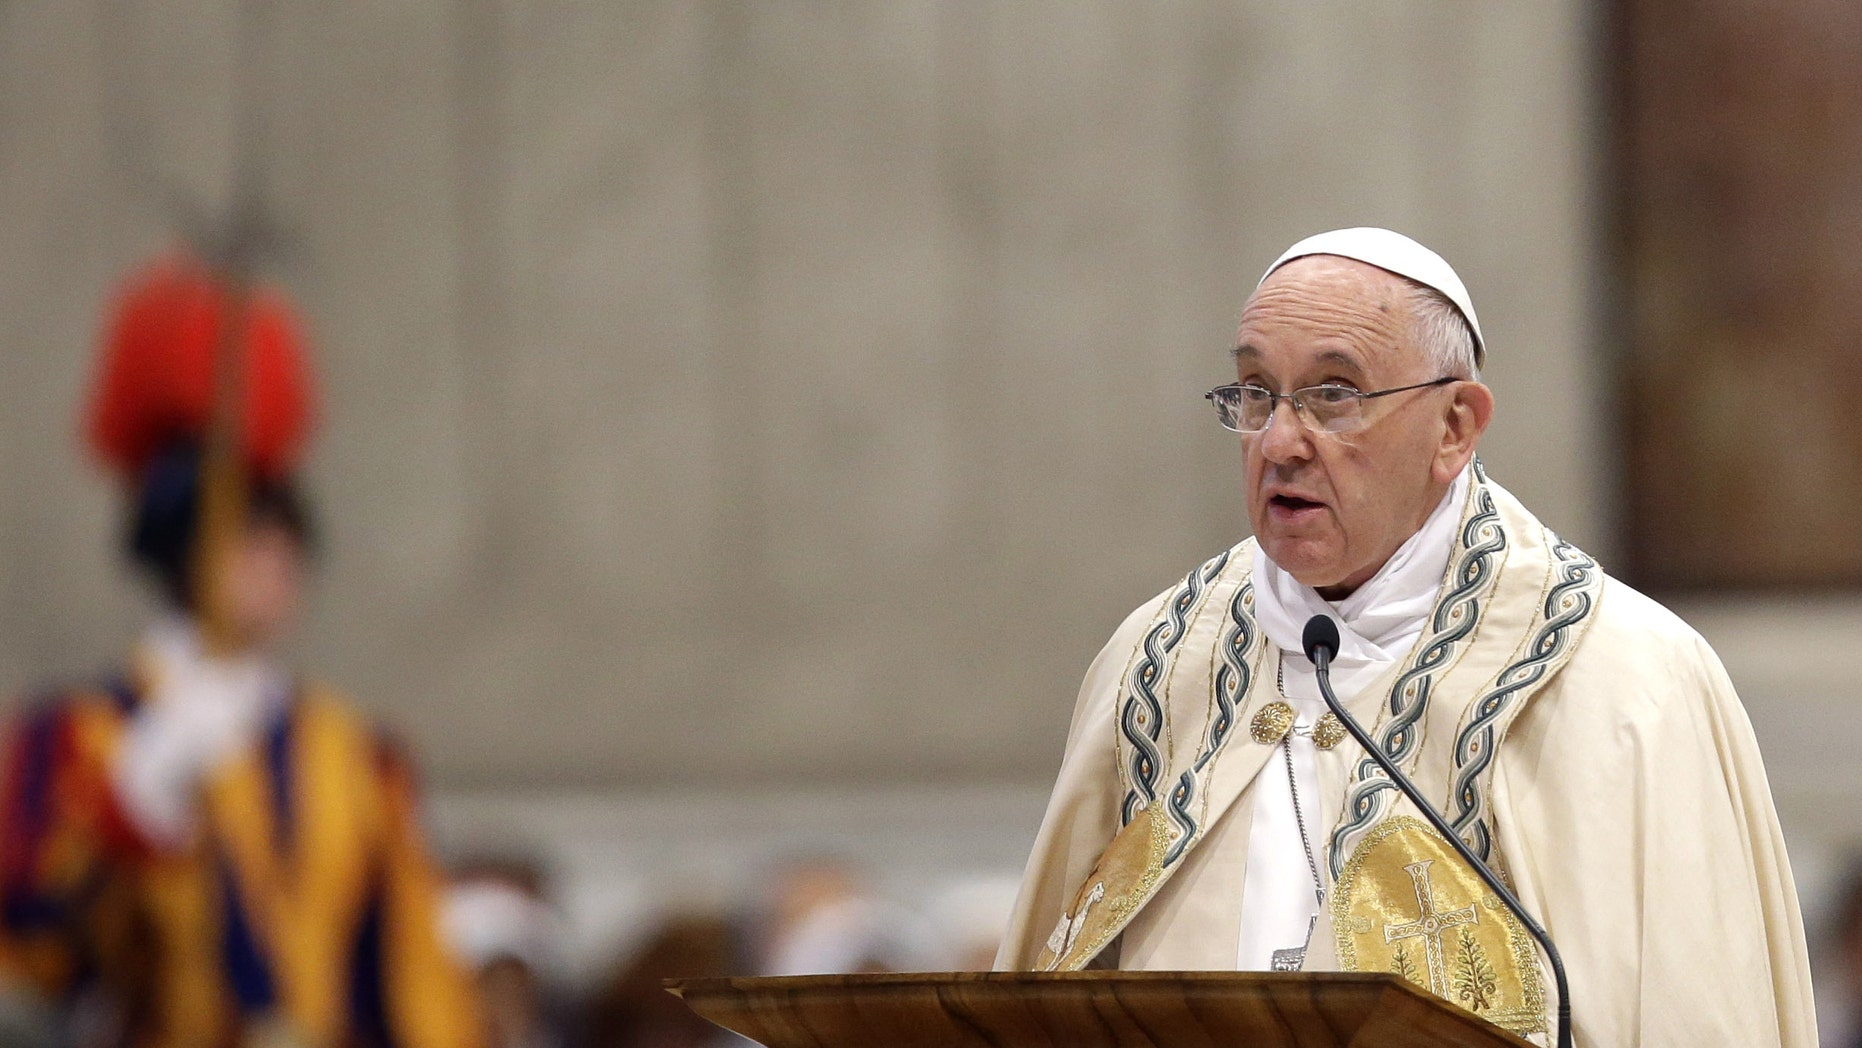 """Pope Francis speaks in St. Peter's Basilica at the Vatican, Saturday, April 11, 2015. Pope Francis has proclaimed a special year of efforts by the Catholic Church to be more merciful and less judgmental. At St. Peter's Basilica Saturday evening, he listened as a Vatican prelate read excerpts from a papal bull, or decree, in which Francis proclaimed an """"Extraordinary Jubilee of Mercy"""" Holy Year. The year begins on Dec. 8 with Francis' opening the normally closed Holy Door in the back of the basilica, and ends on Nov. 20, 2016. (AP Photo/Gregorio Borgia)"""